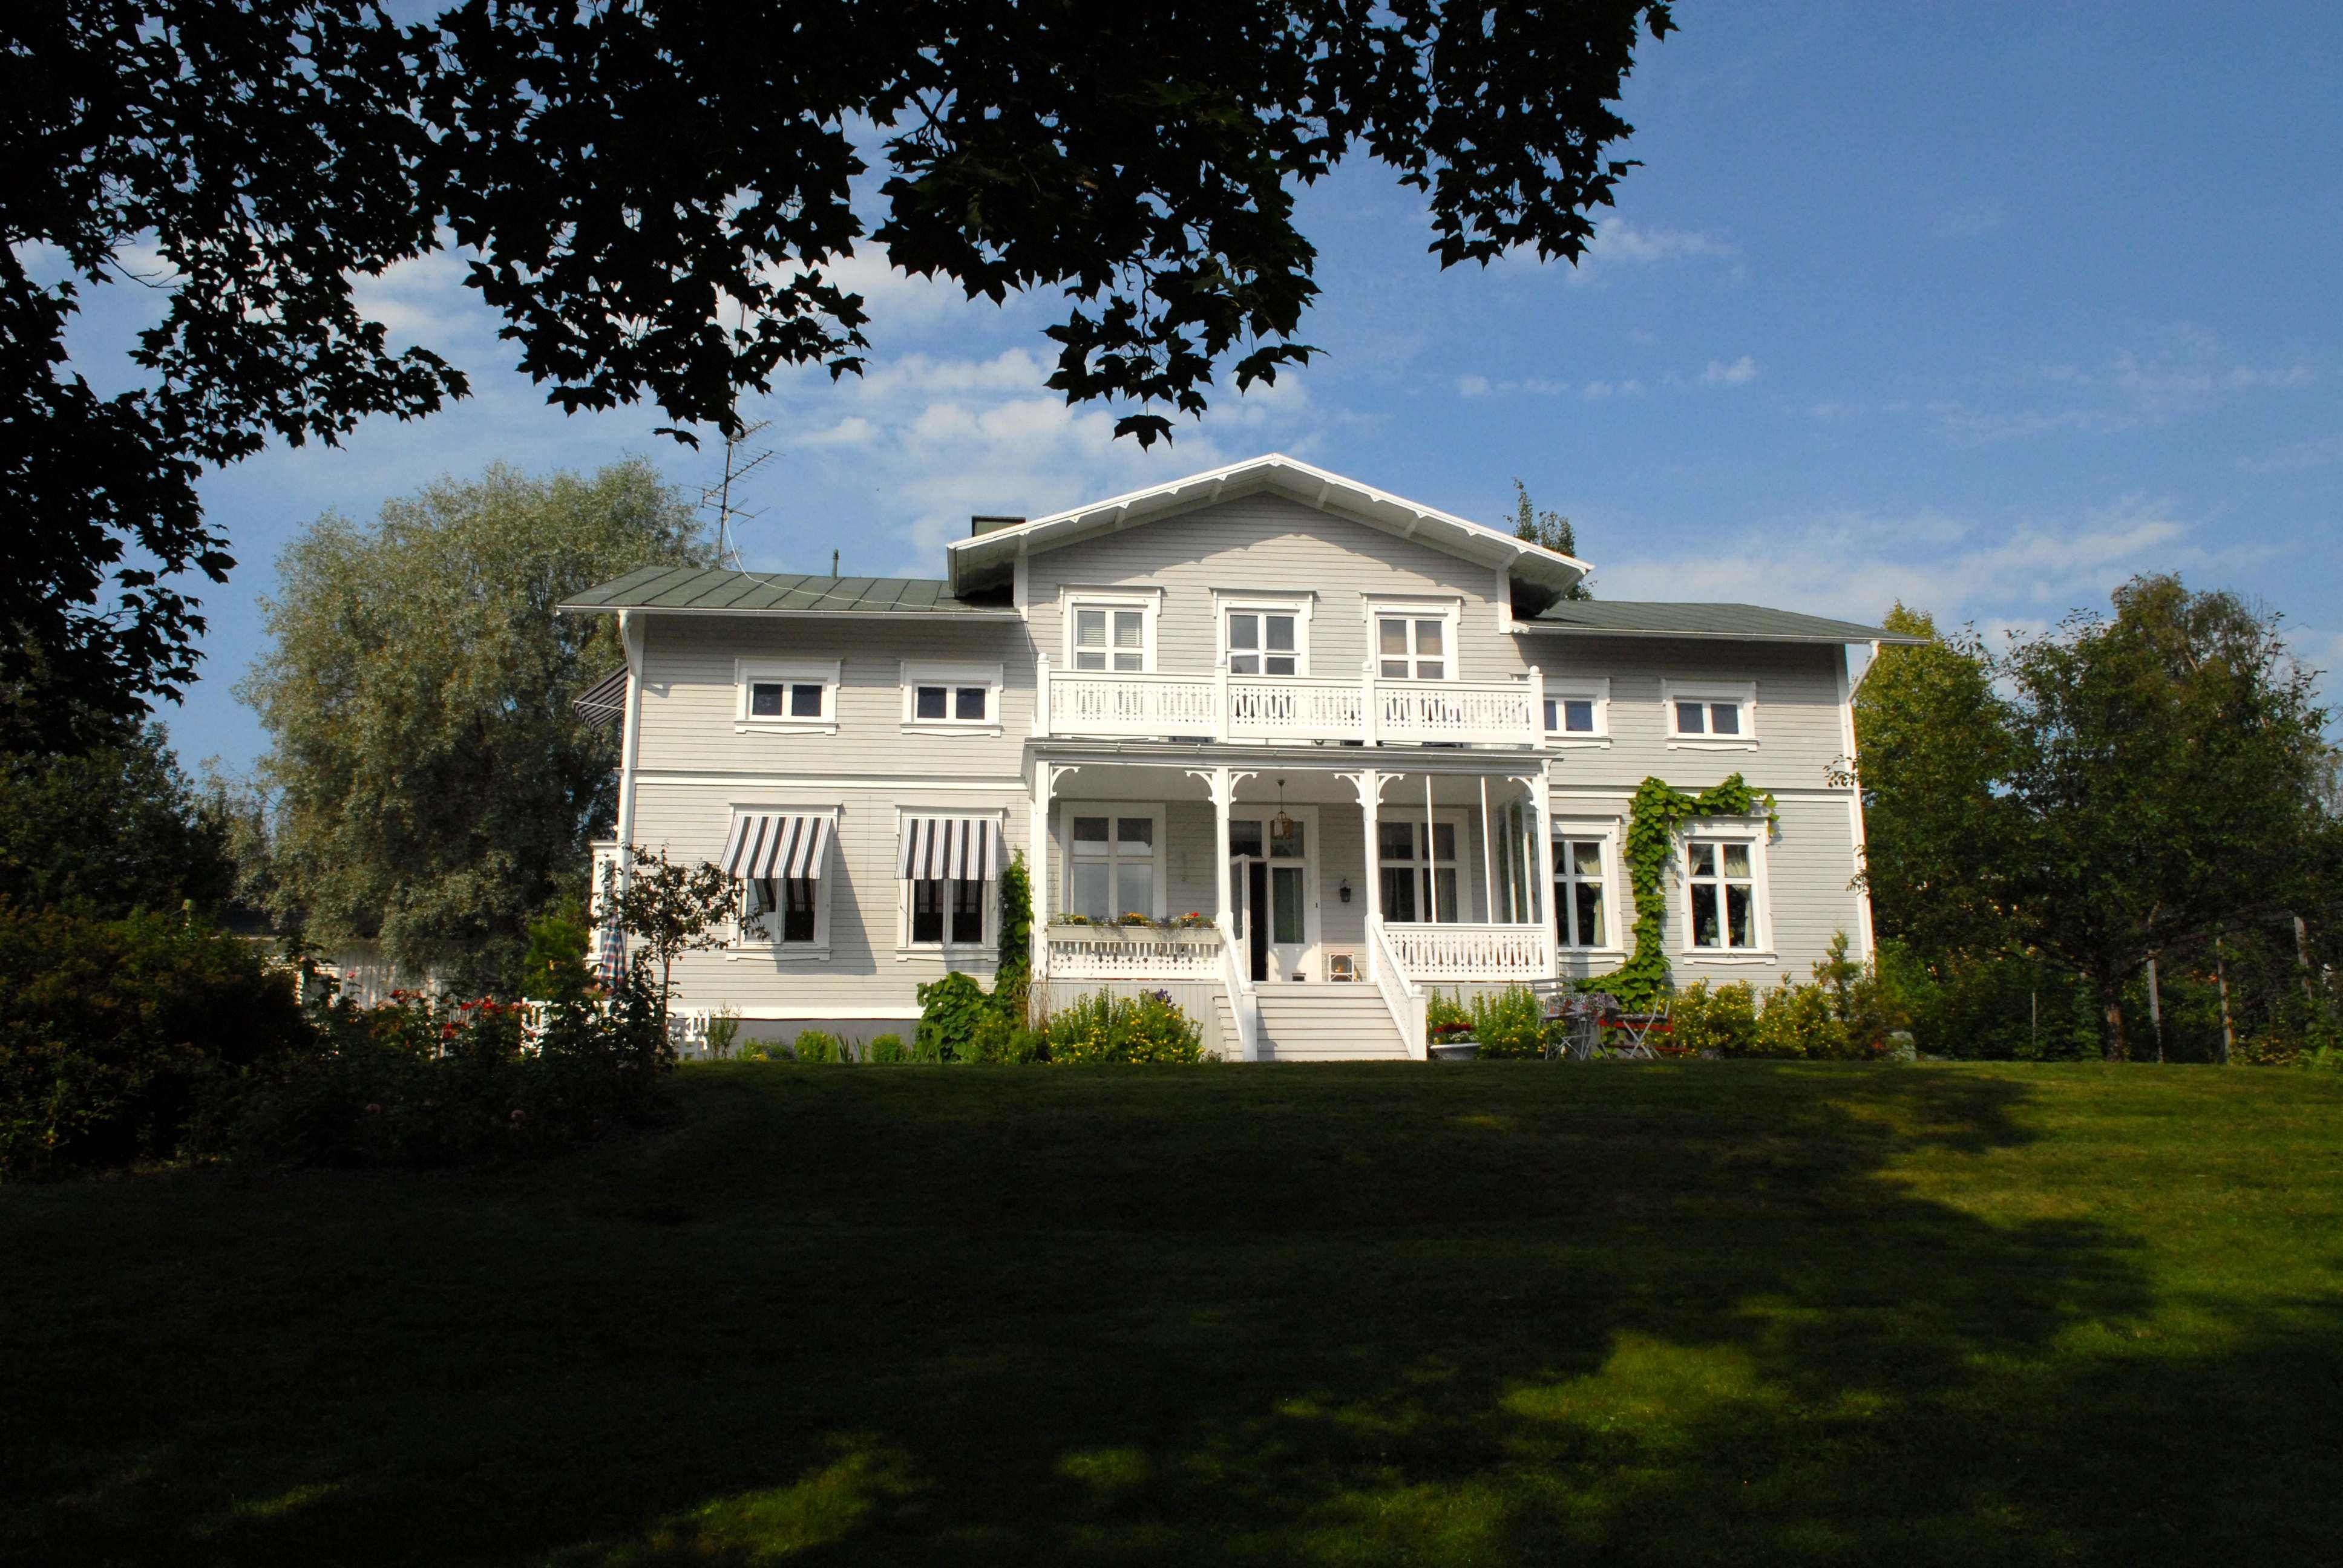 Länsmansgården Ådalen, Bed & Breakfast/Boarding house